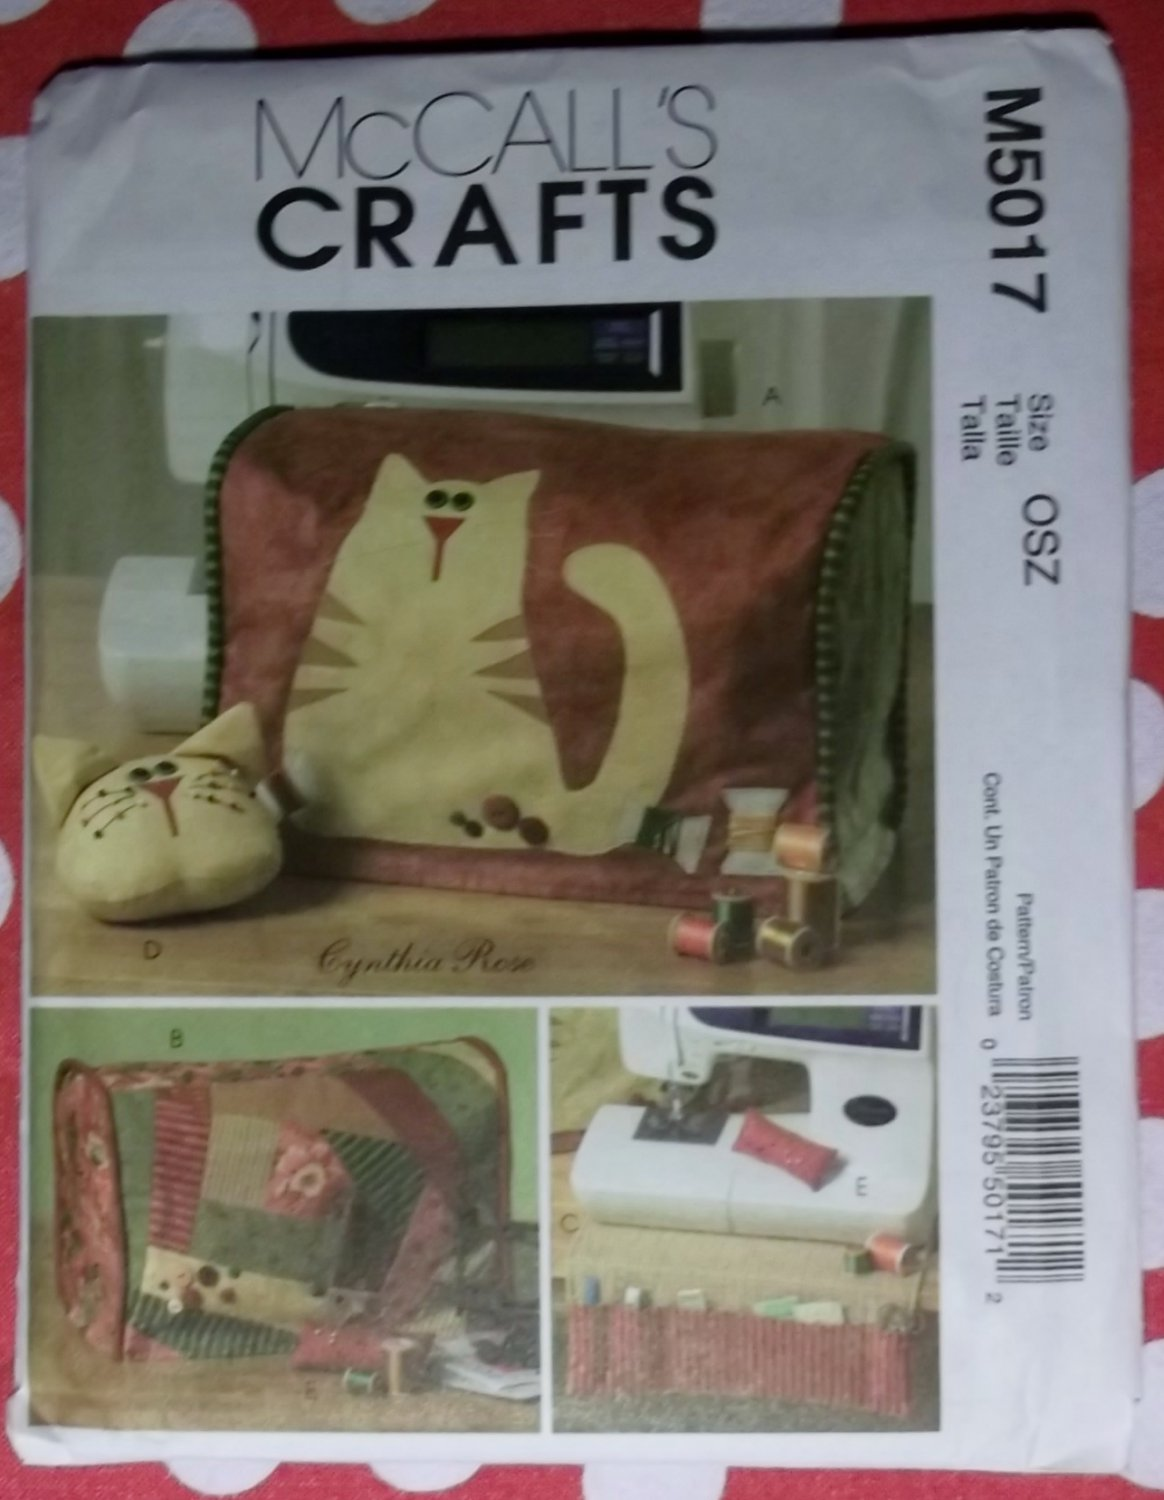 McCall's Patterns M5017 Cynthia Rose Designer Sewing Machine Cover and Accessories, Uncut